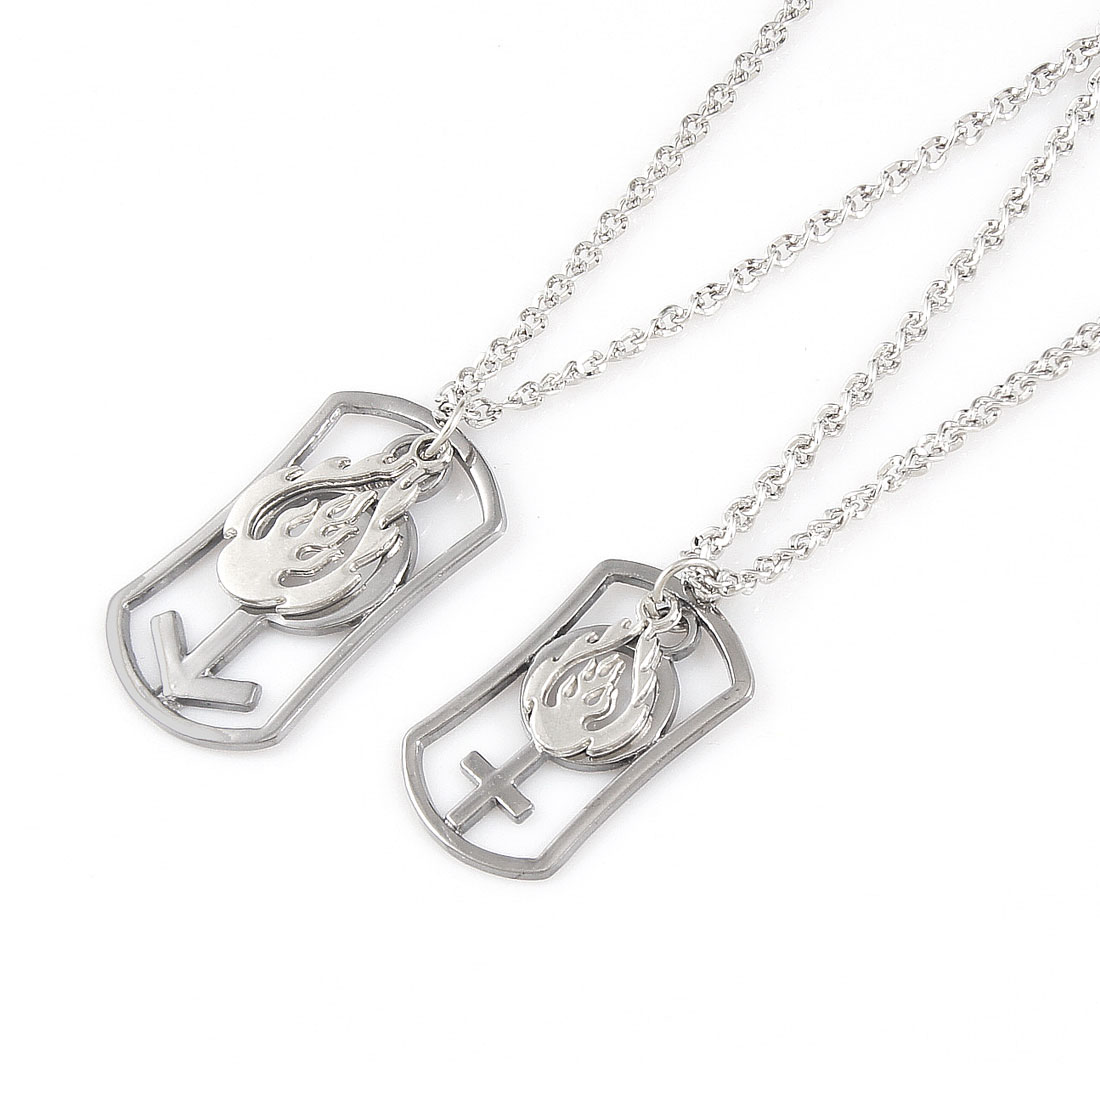 2 Pcs Silver Tone Alloy Flame Symbol Pendant Chain Chocker Necklace Lover Gift